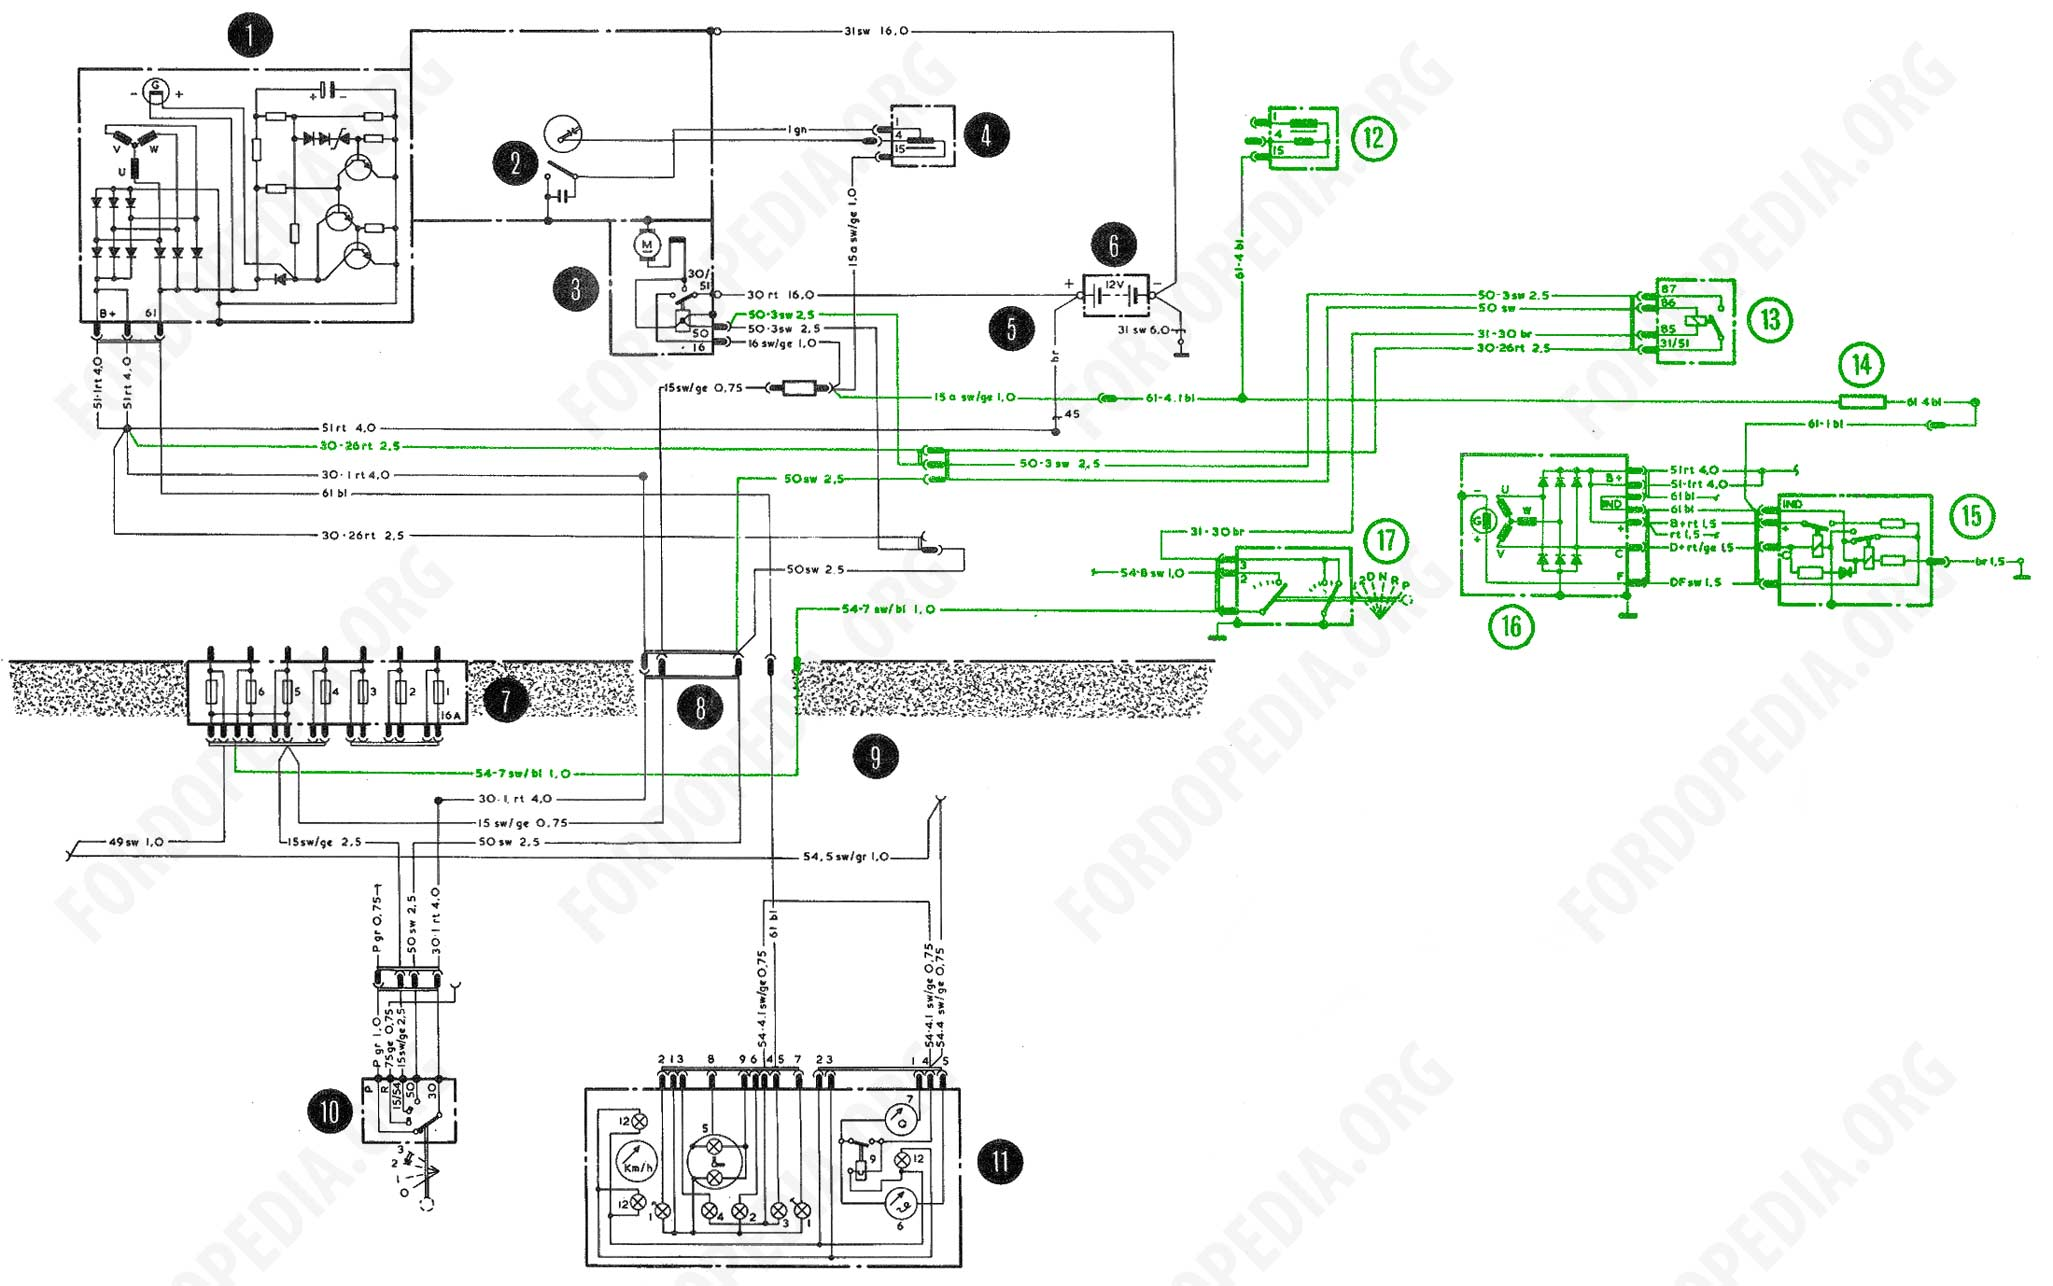 base L GL charging starter ignition circuit fordopedia org bosch ignition module wiring diagram at n-0.co